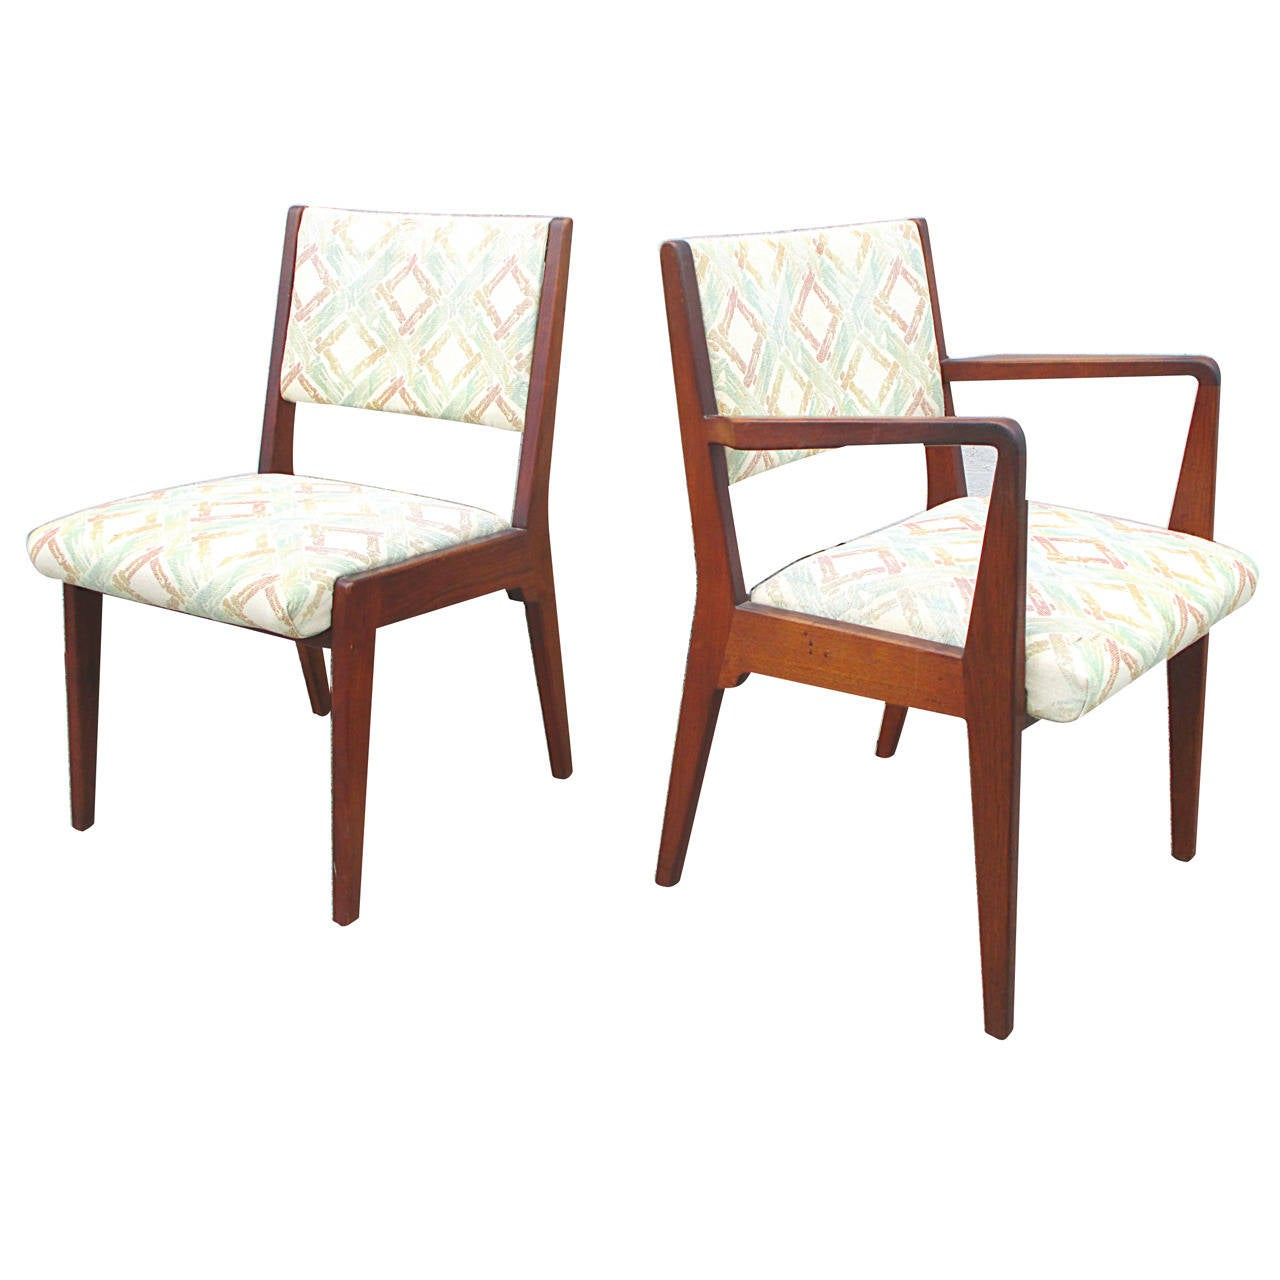 Jens risom walnut dining chairs set of six for sale at 1stdibs - Jens risom dining chairs ...